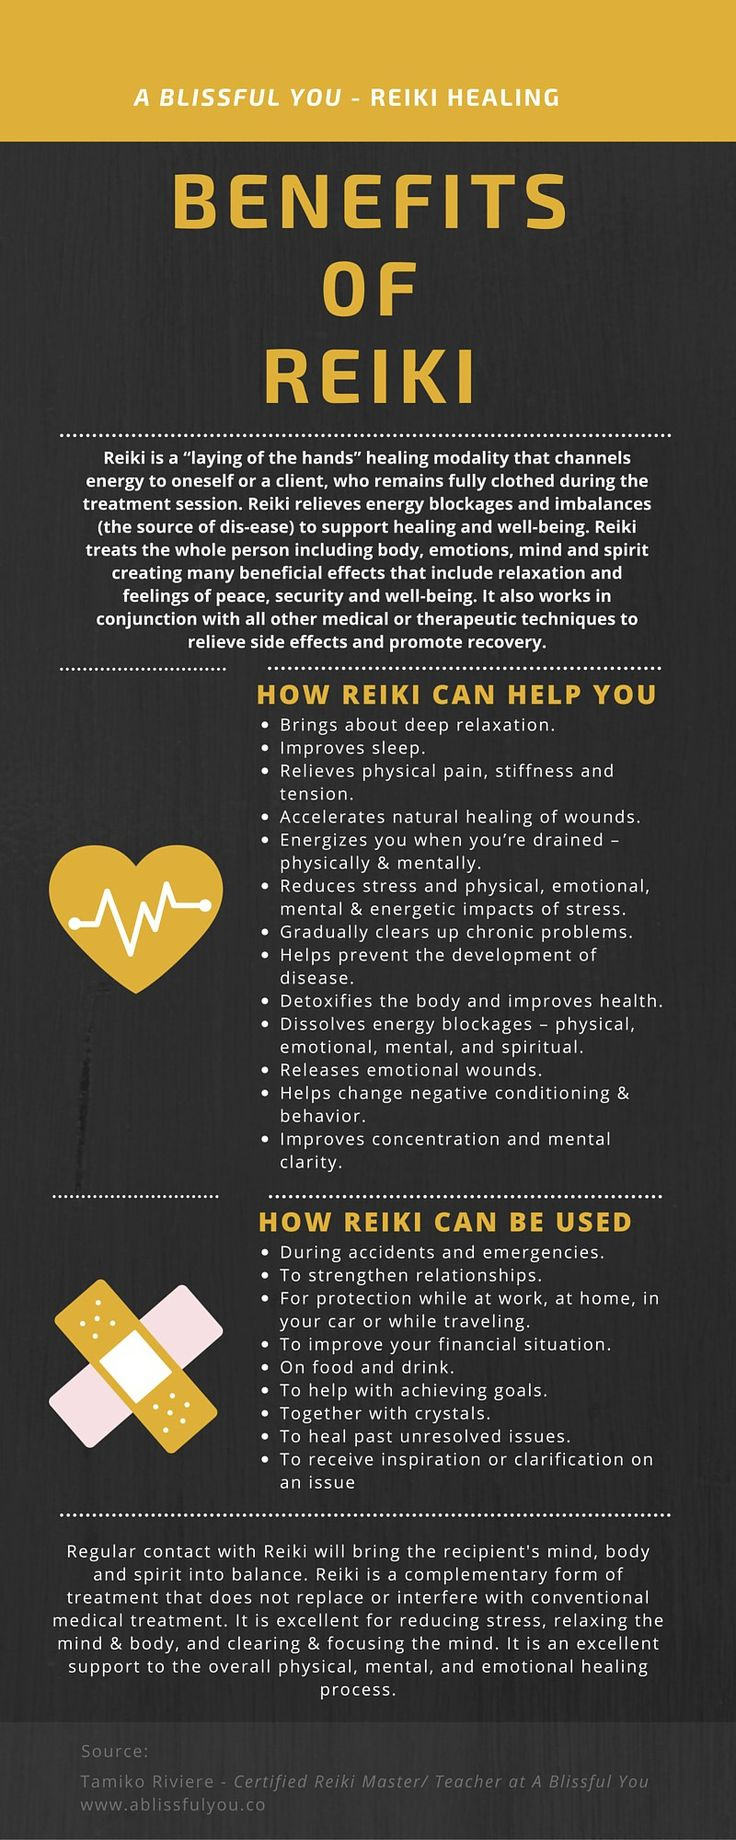 benefits of reiki infographic Now You Can Learn To Use Your Natural Ability; To Channel Your Life-force Energy, Heal Your Family, Friends (and Yourself)... And Attain The Skills Of A Master Reiki Healer... http://pure-reikihealing.blogspot.com?prod=psDyvUks